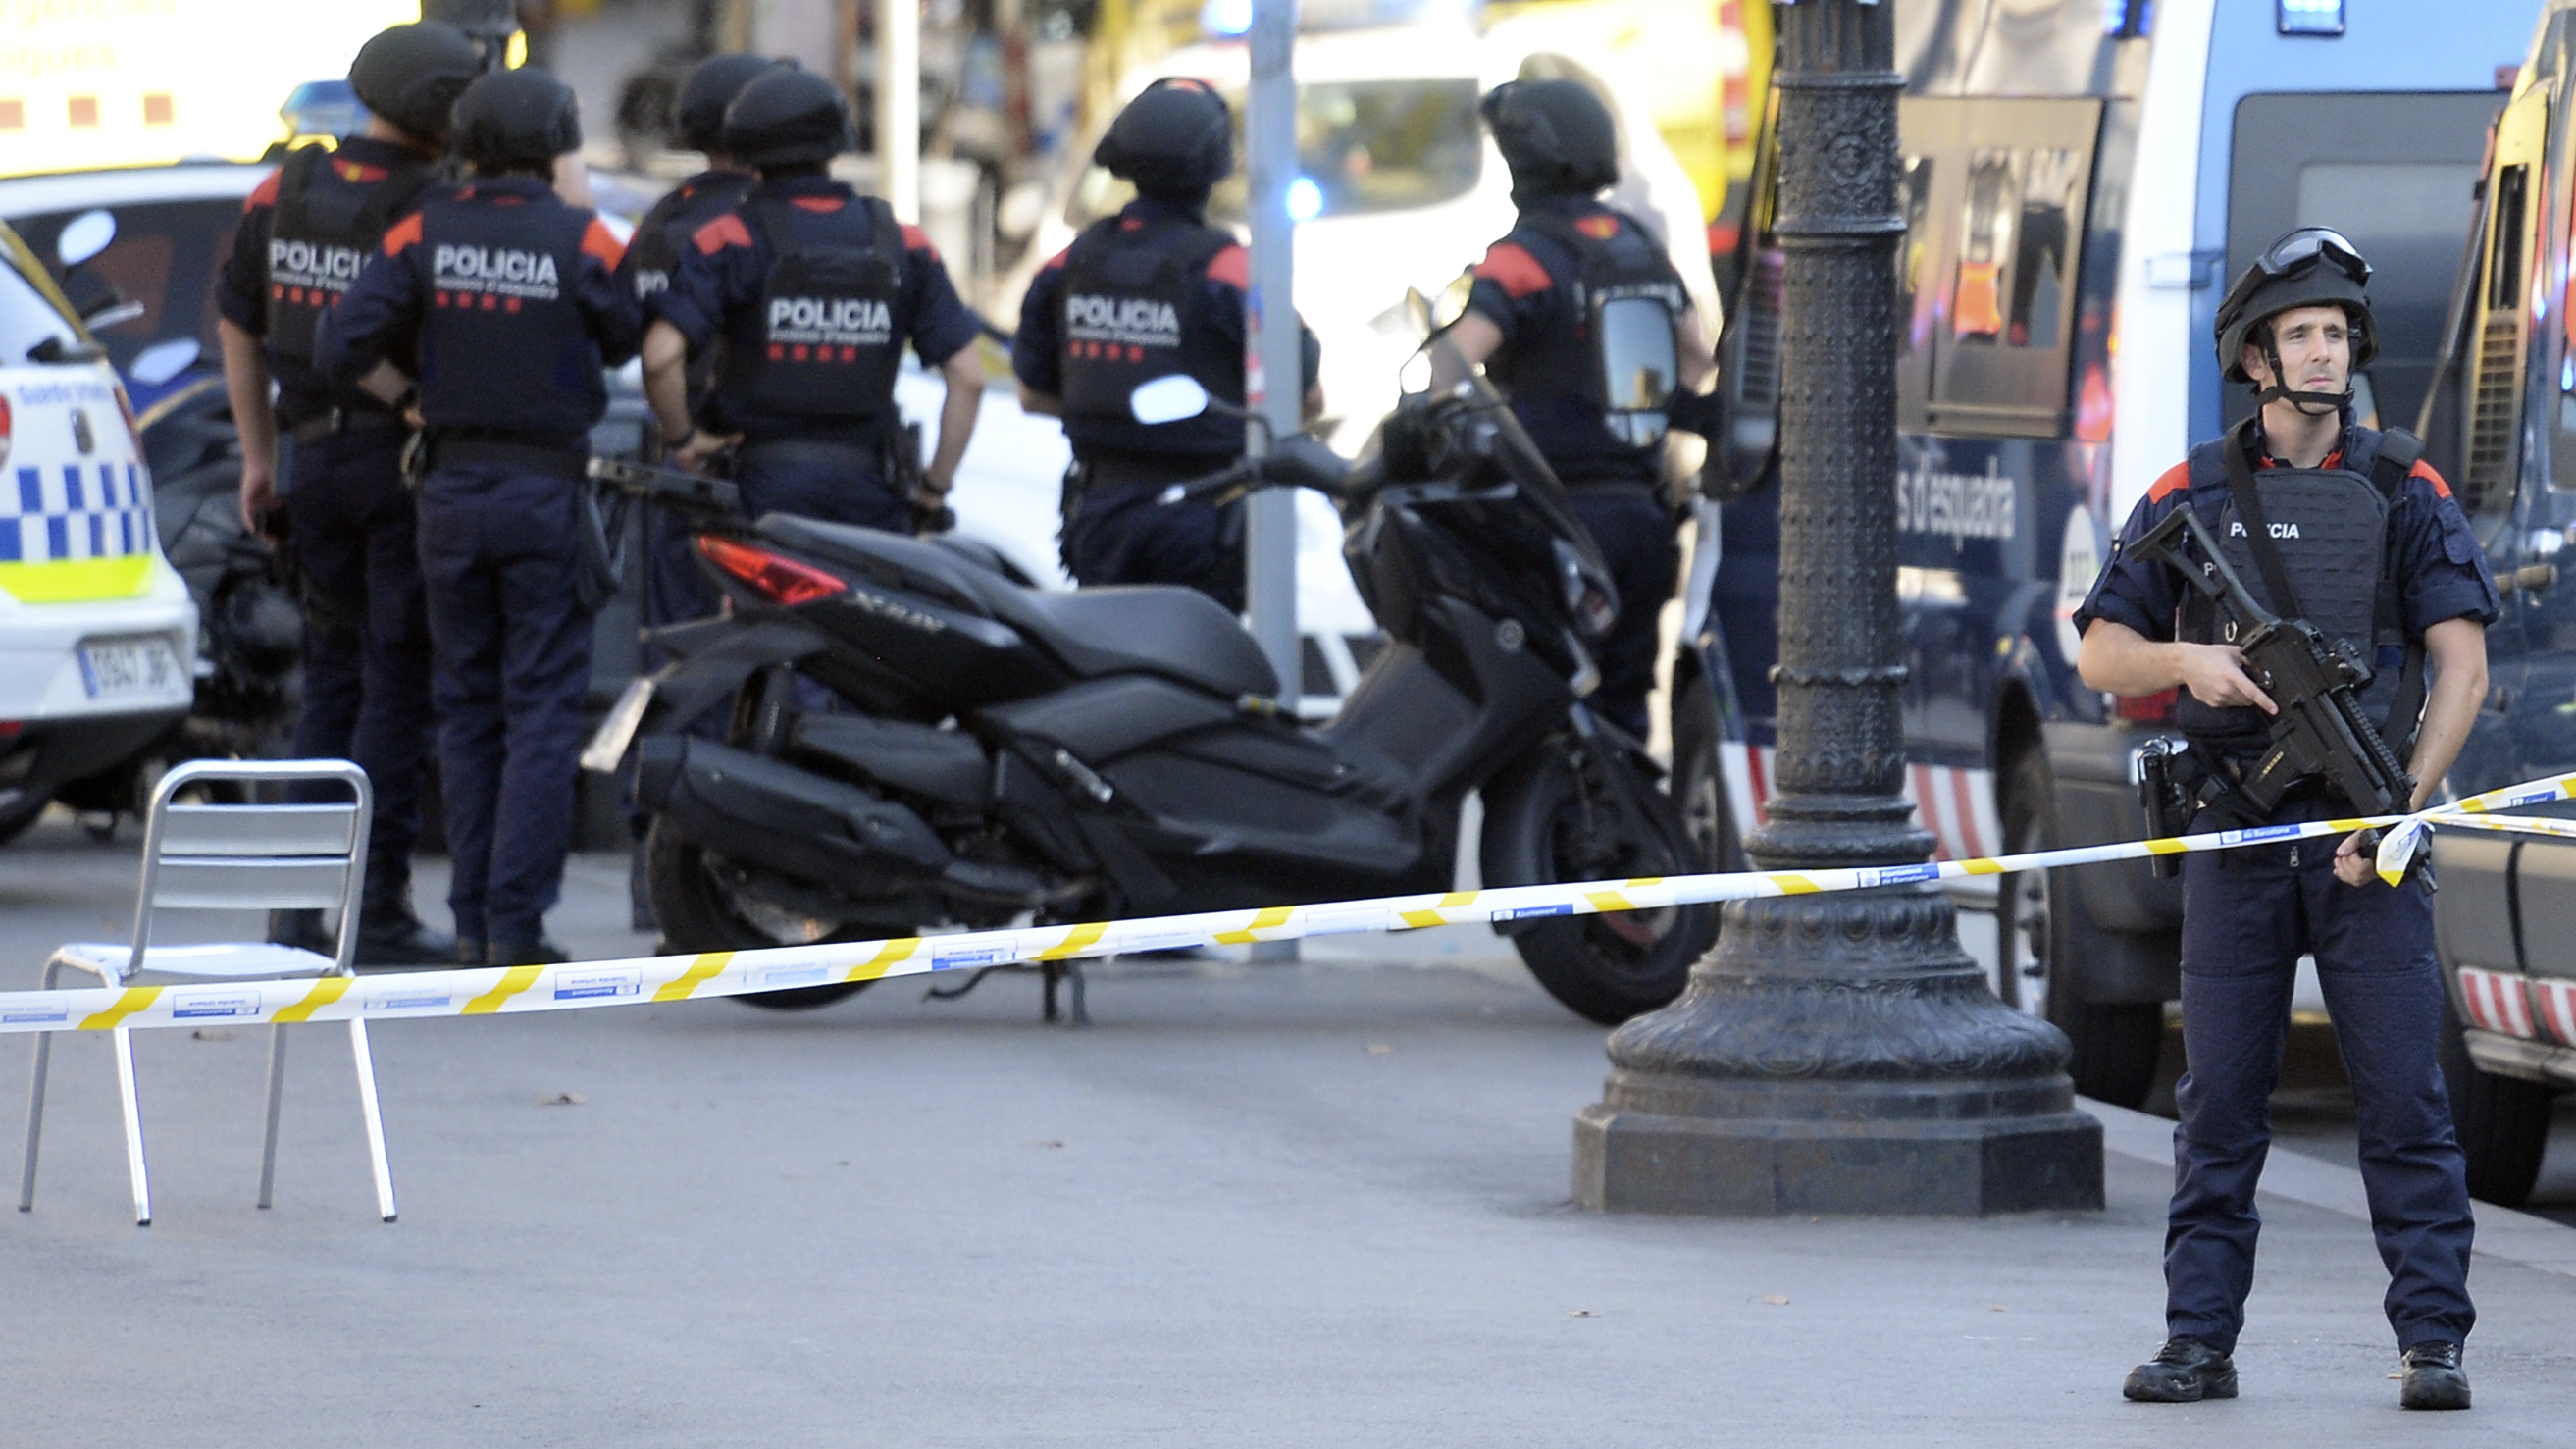 Armed policemen stand in a cordoned-off area on the Rambla in Barcelona, after a van drove into a crowd of pedestrians. Police say the deadly incident was a terror attack. (Josep Lago/AFP/Getty Images)